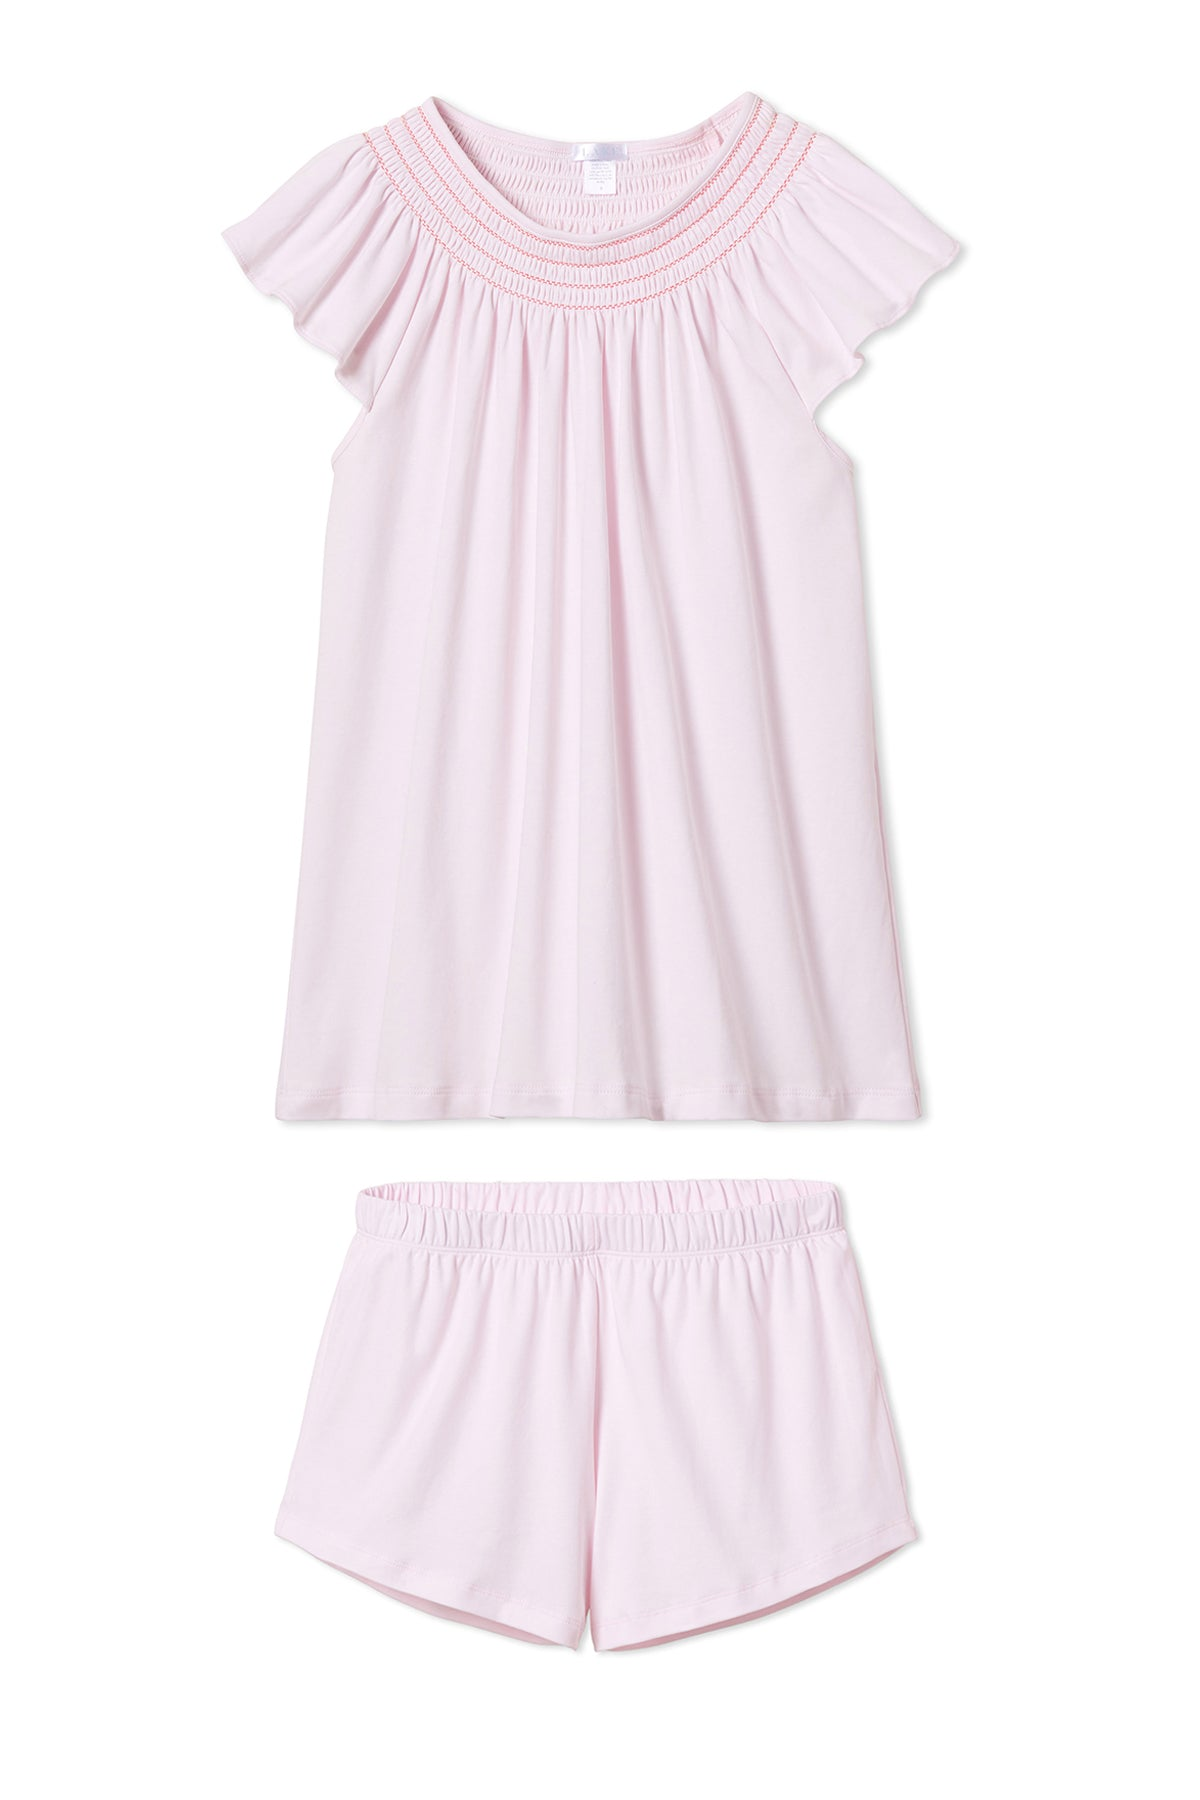 Pima Smocked Flutter Shorts Set in Azalea